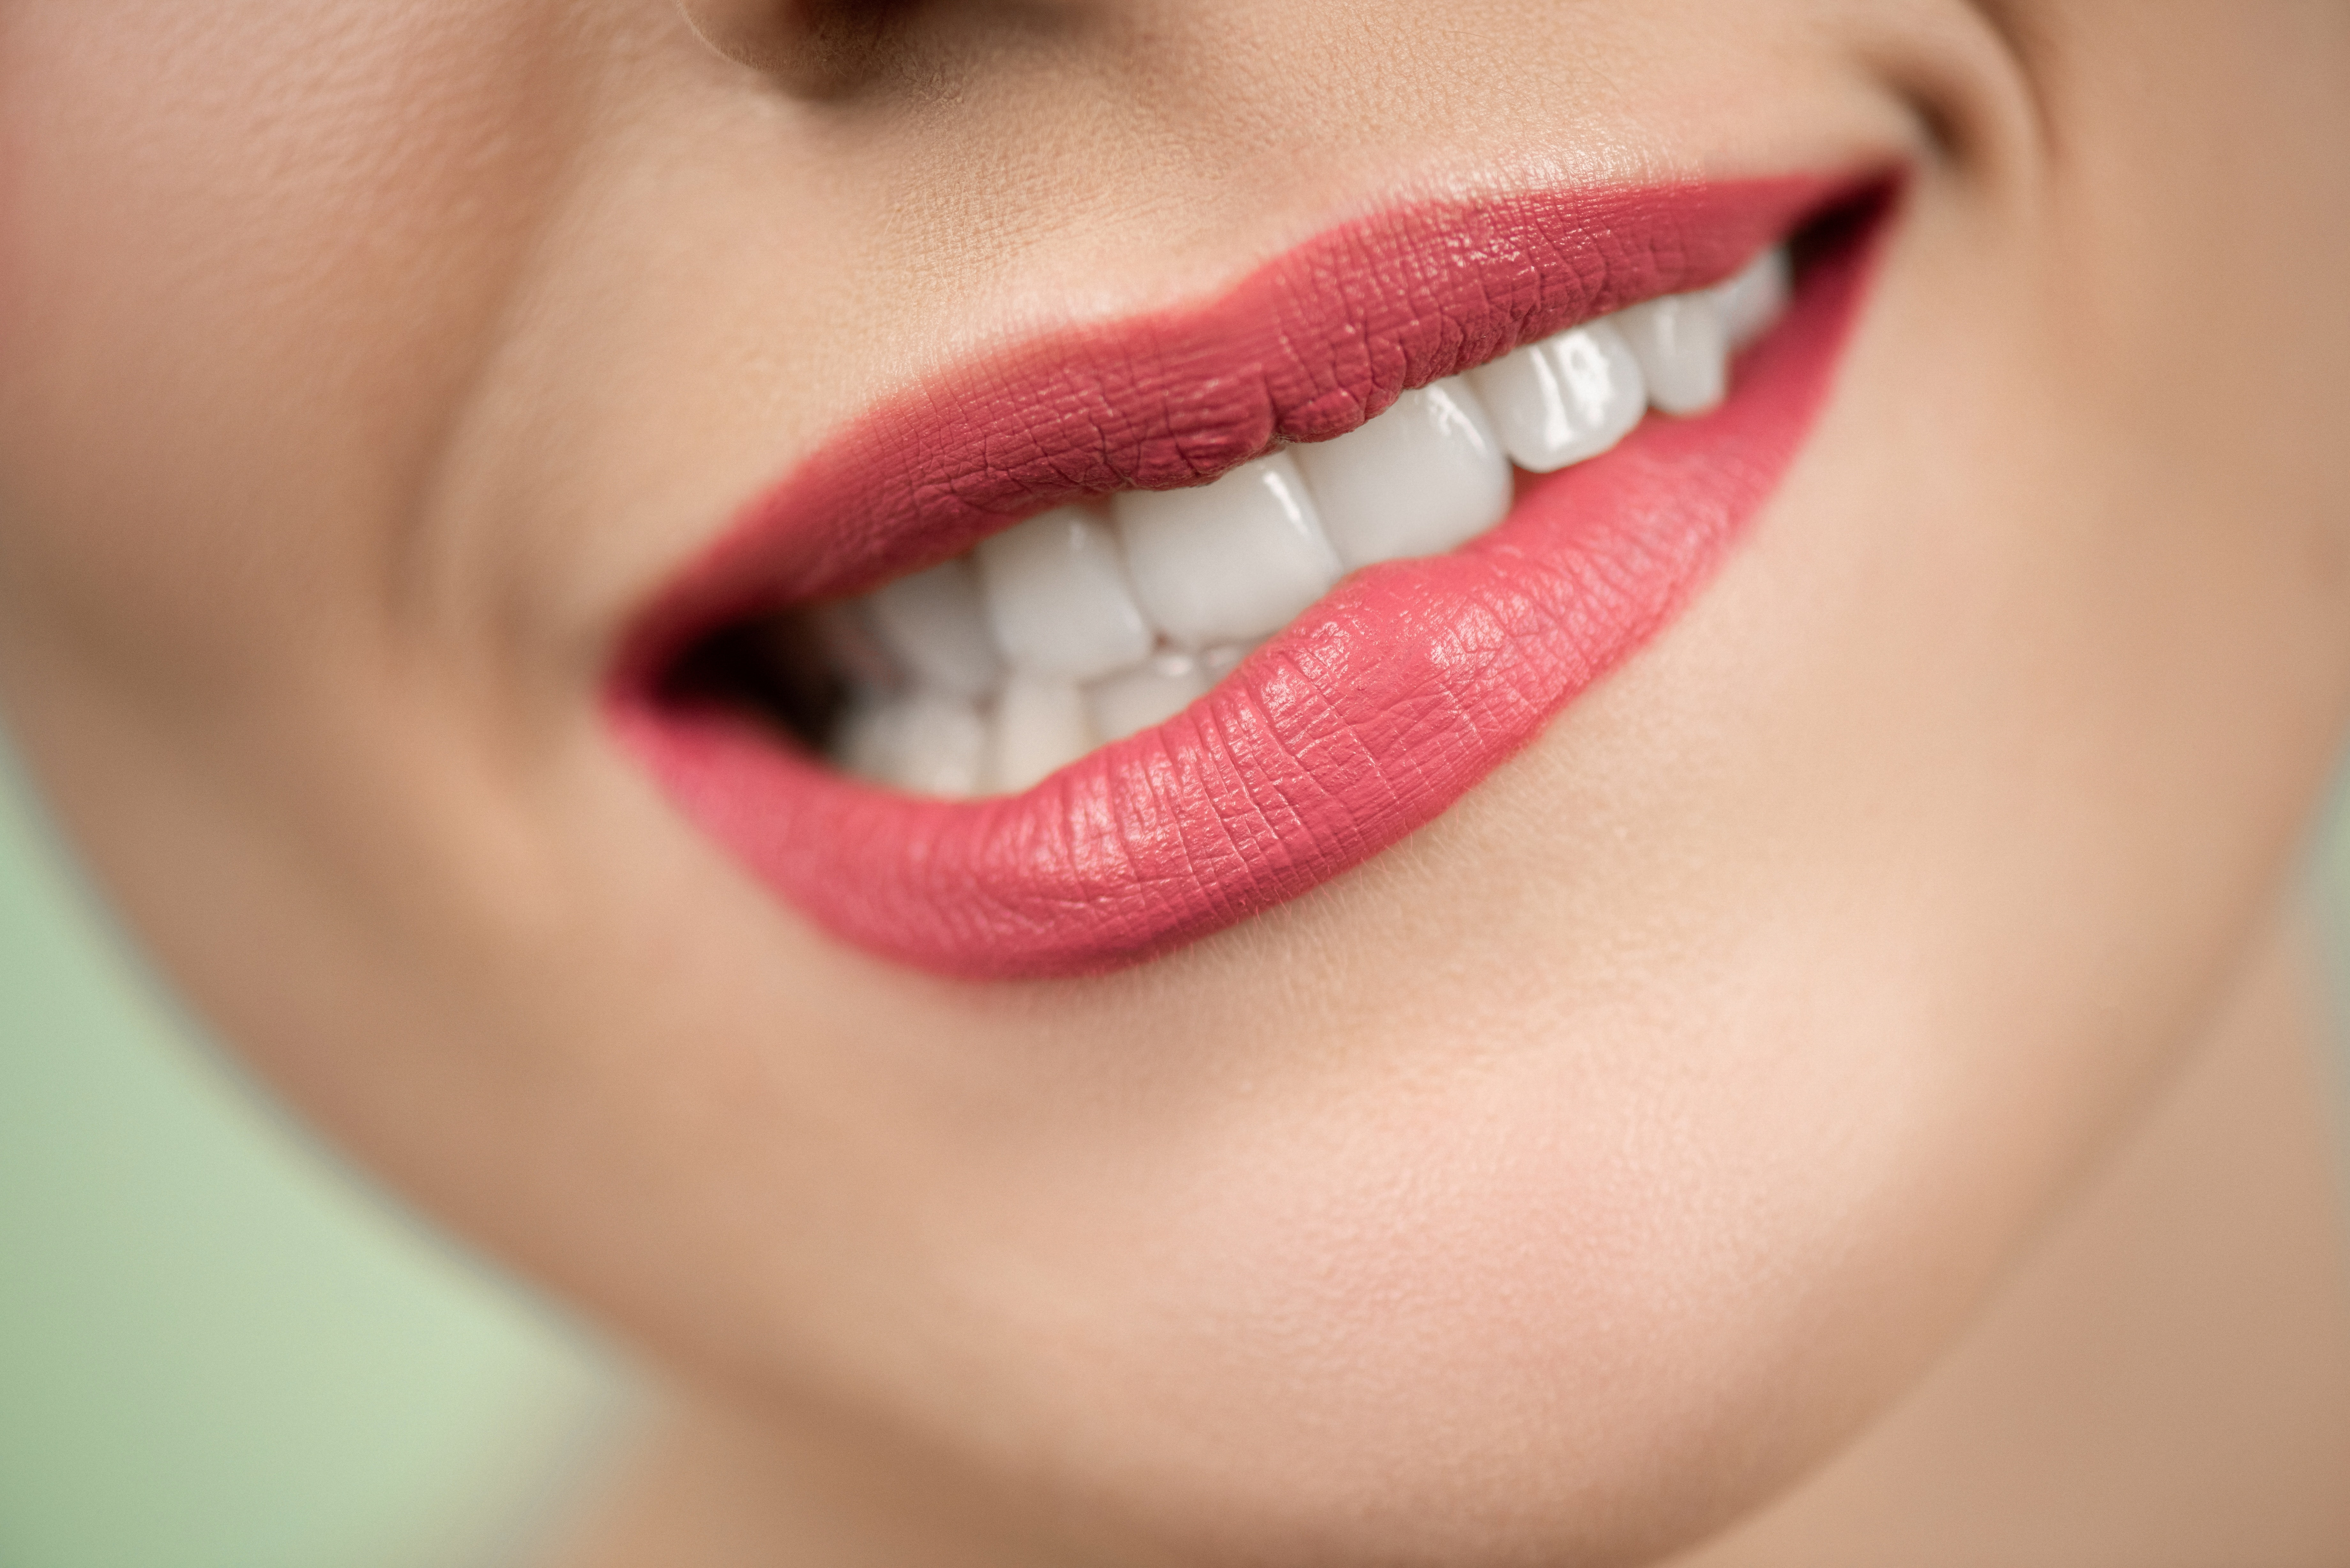 Woman With Red Lipstick Biting Her Lips · Free Stock Photo